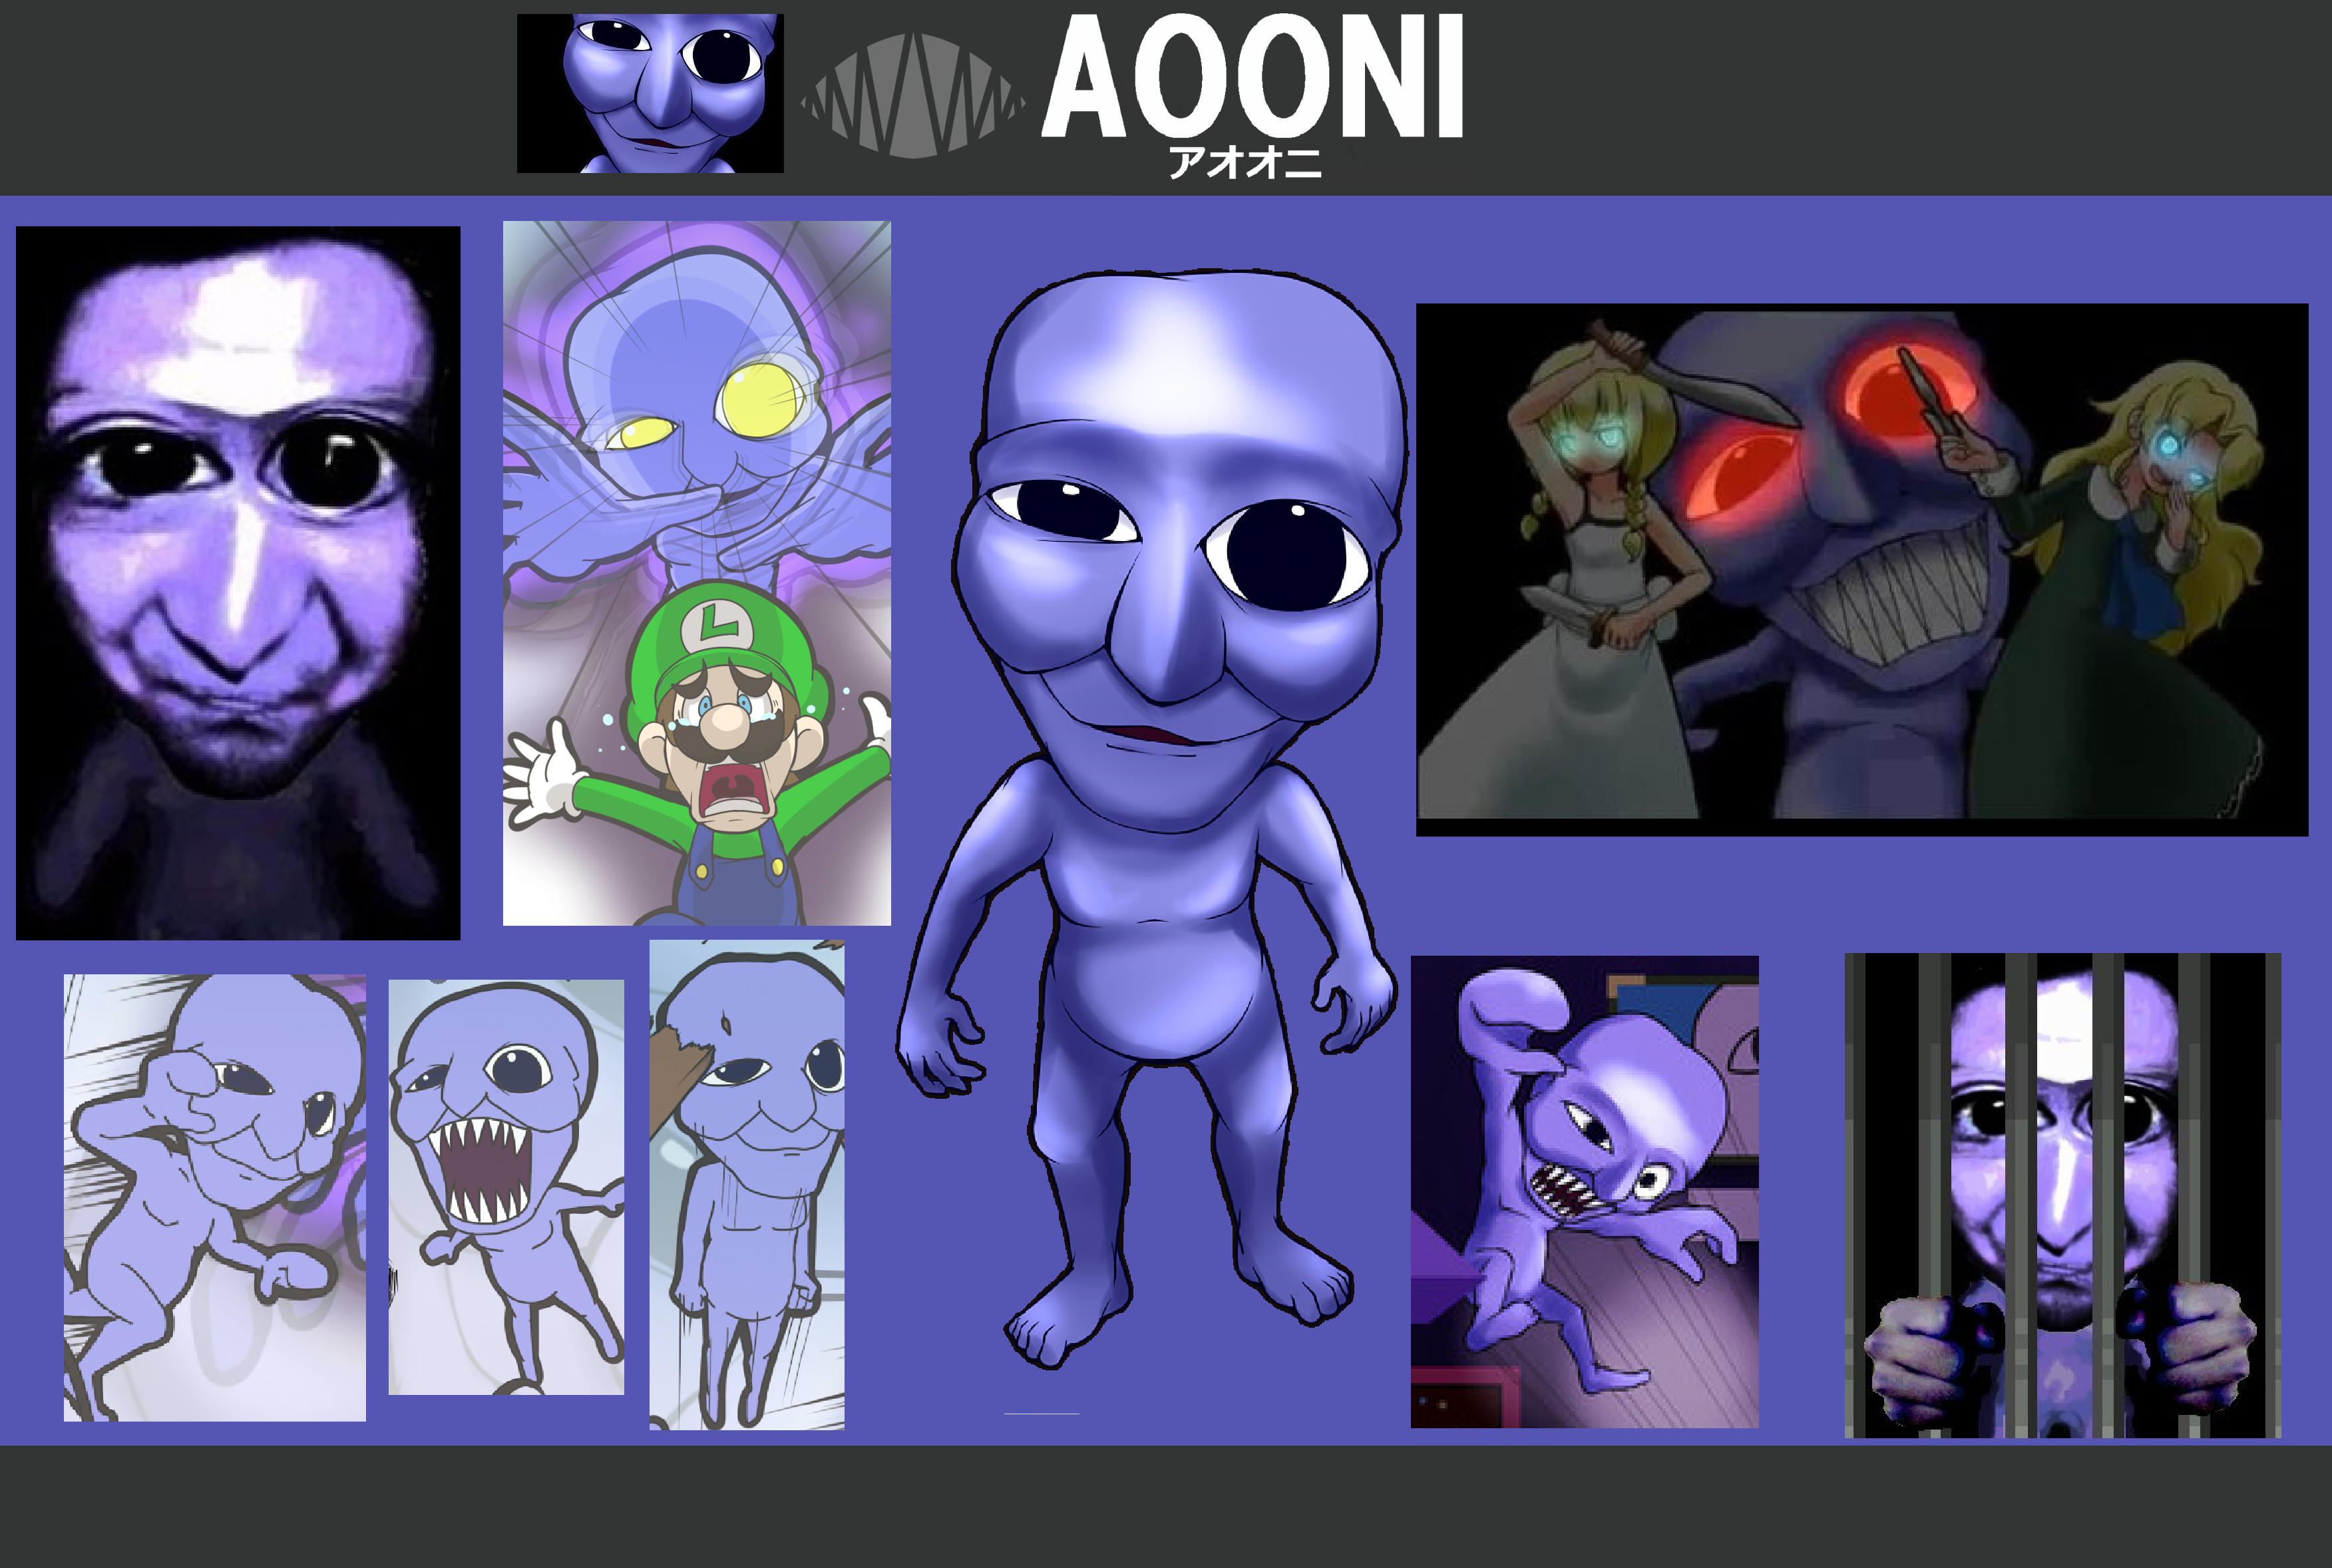 Super Smash Bros The Fears Ao Oni Wallpaper By Photographerferd On